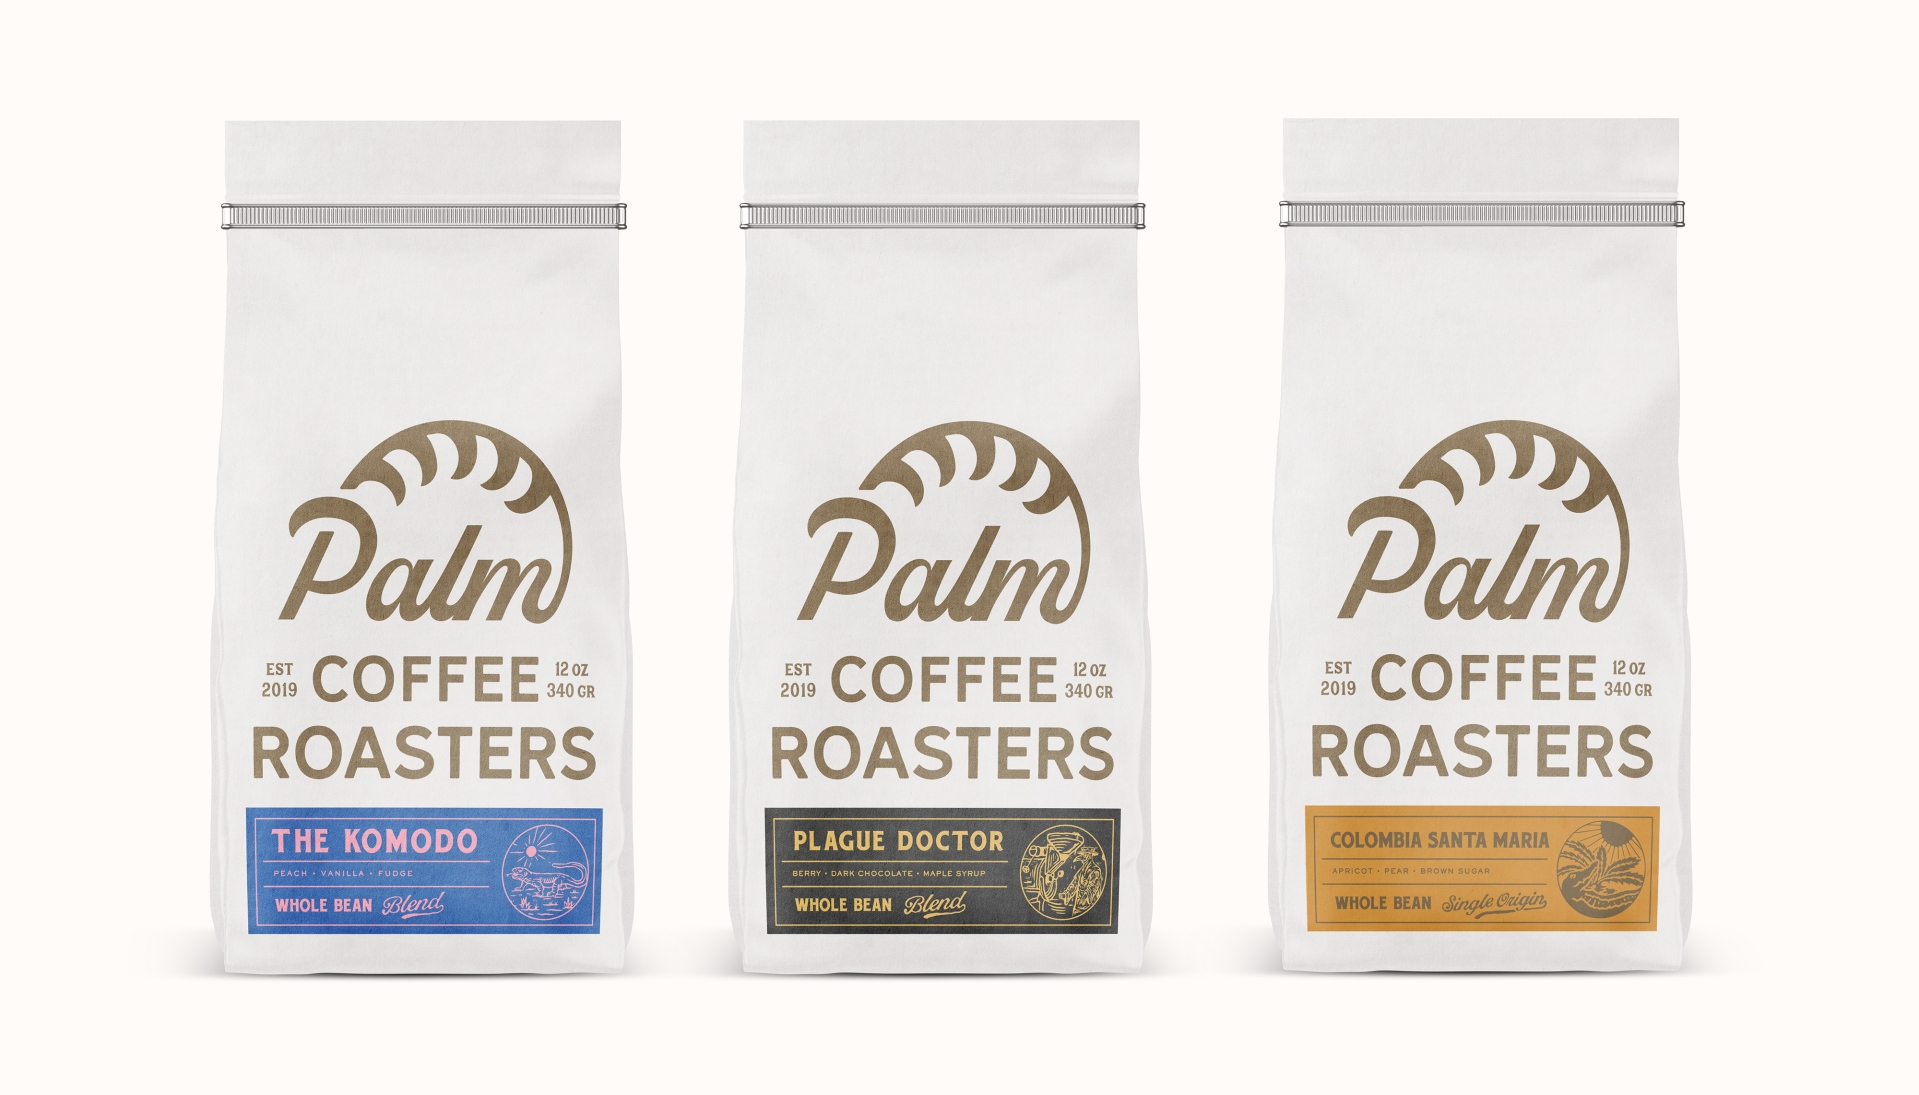 palm-coffee-design-rise-wise-zeki-michael-home-of-us-collab-packaging-branding-studio-freelance-agency-usa.jpg